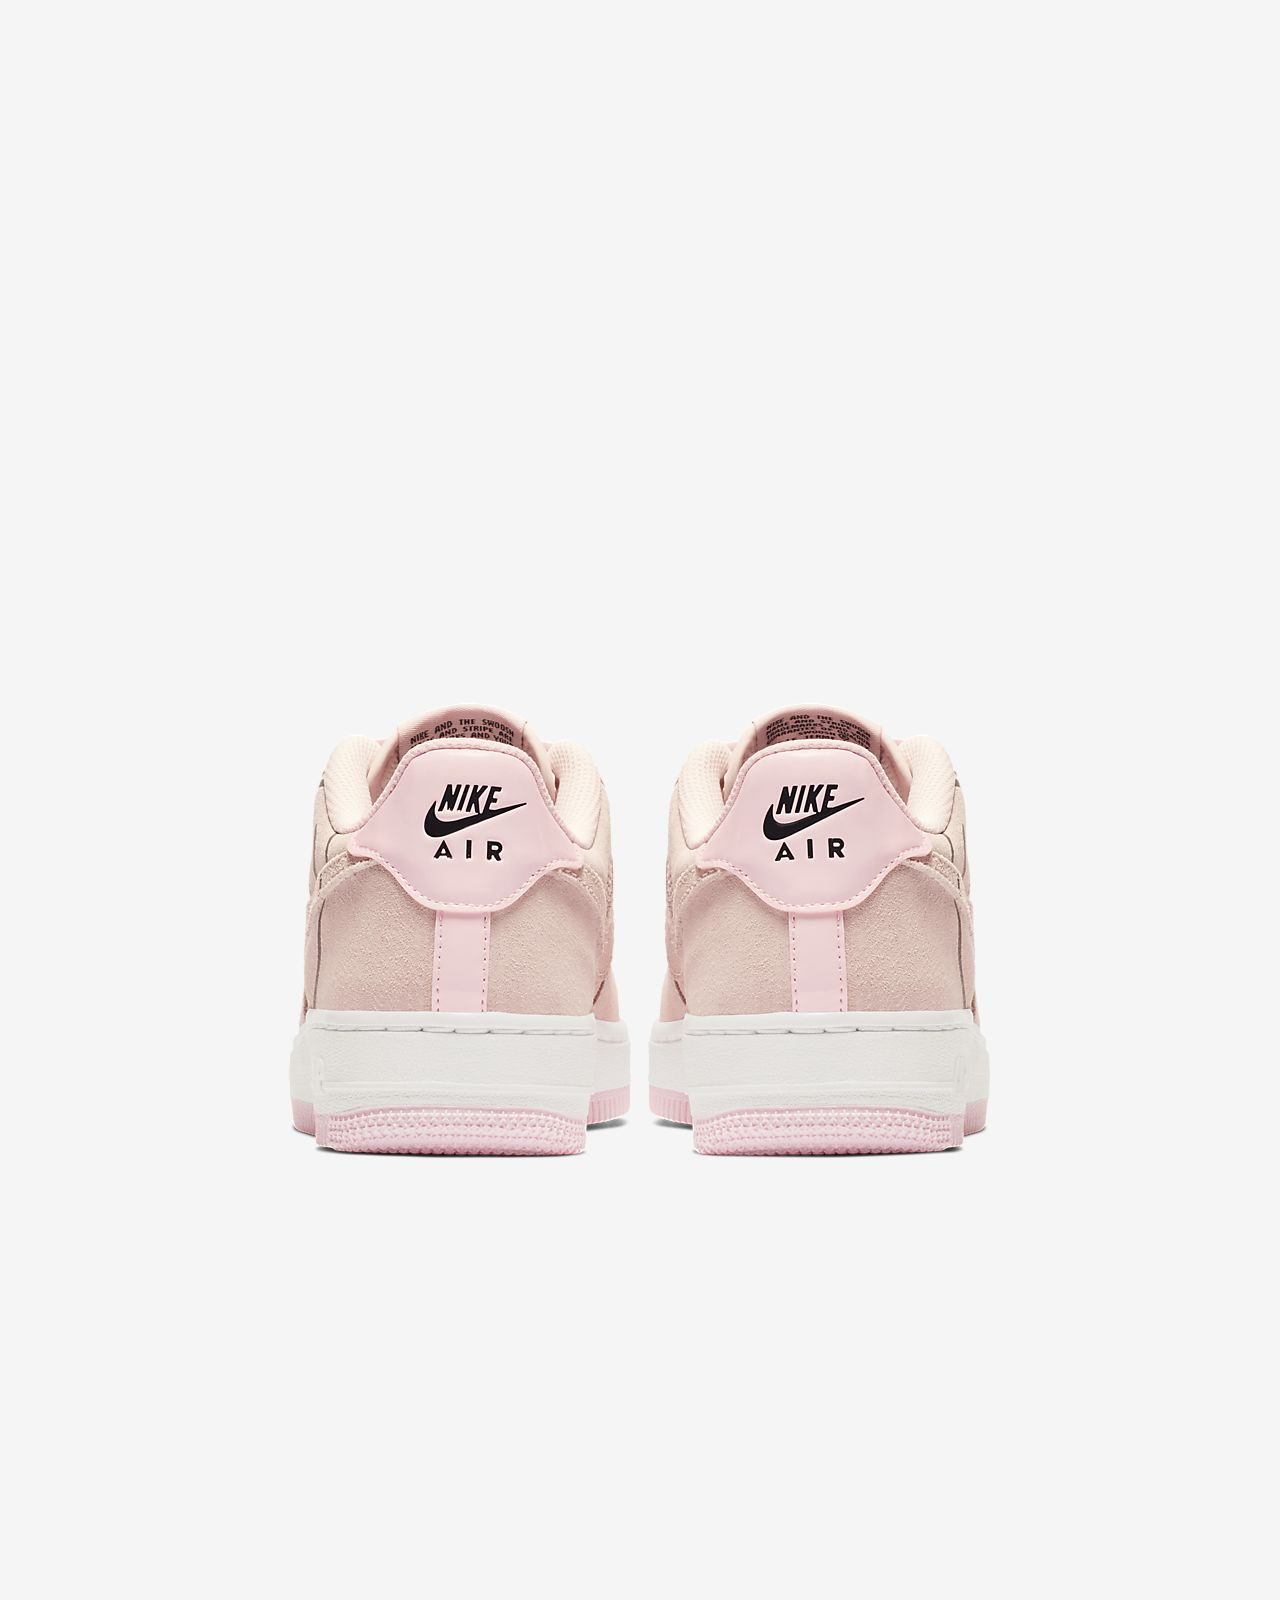 low priced ad778 81bb9 ... Nike Air Force 1 LV8 2 Big Kids  Shoe